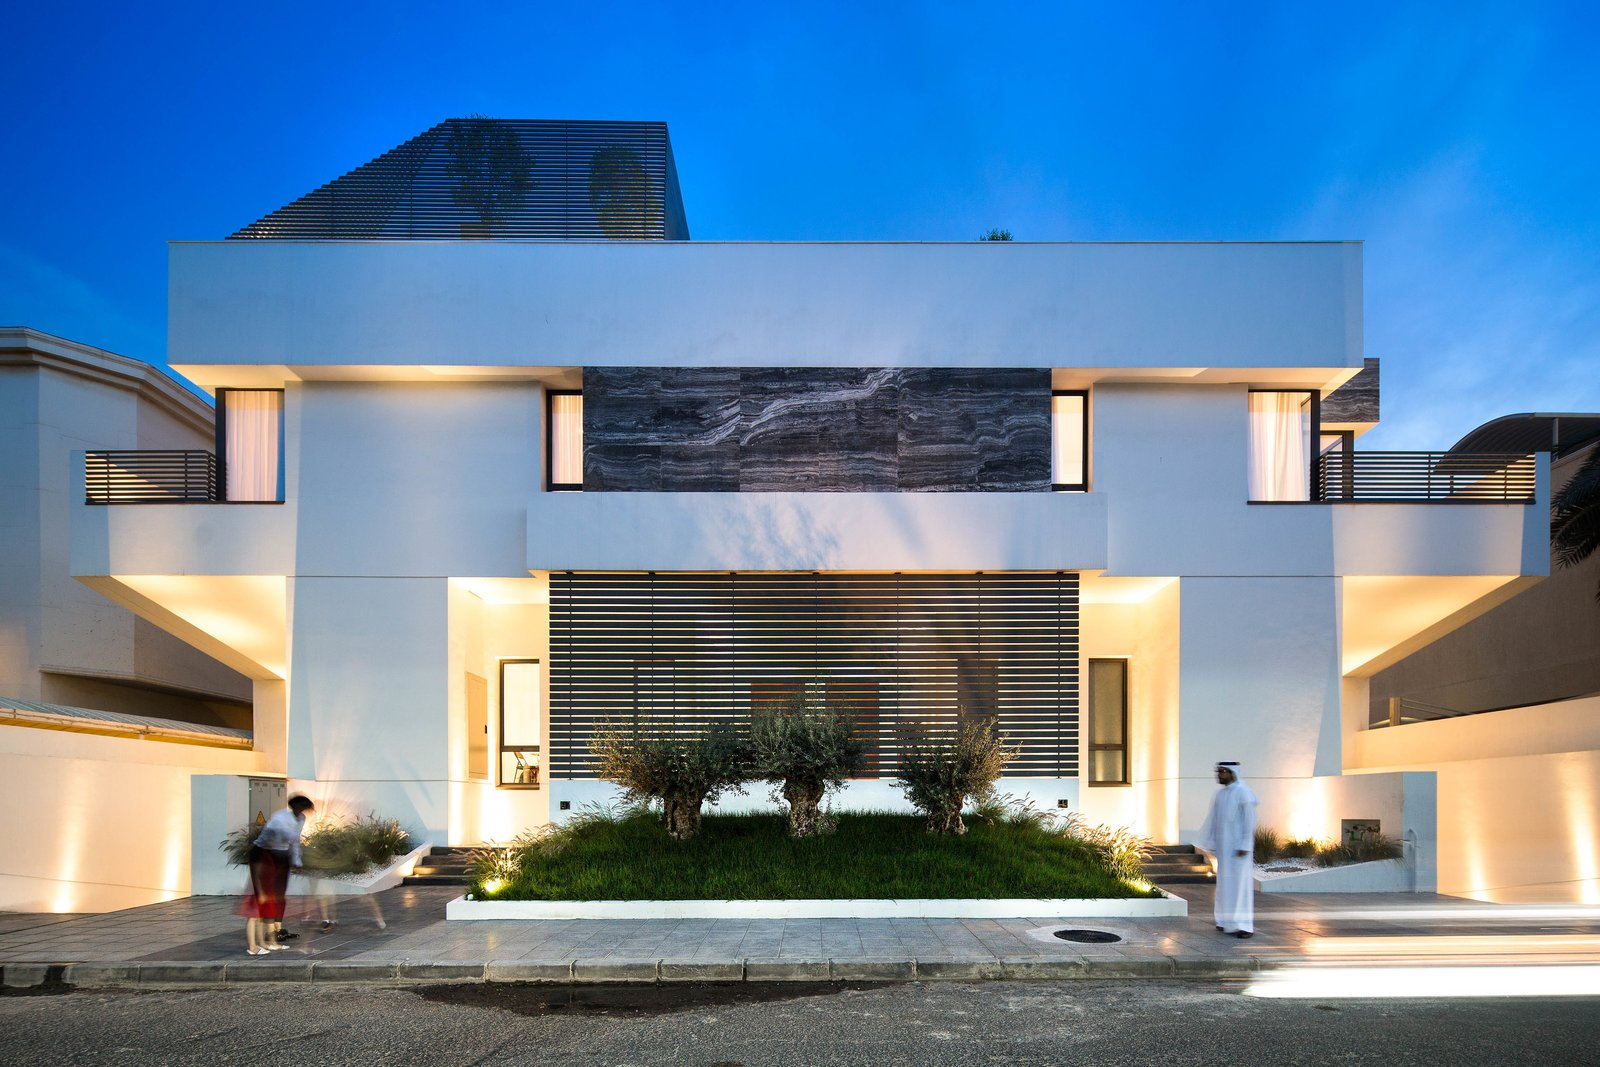 Street view, frontal, dusk Tagged: Outdoor, Trees, Grass, Shrubs, Garden, Raised Planters, Front Yard, Stone Patio, Porch, Deck, Concrete Patio, Porch, Deck, Metal Patio, Porch, Deck, Horizontal Fences, Wall, Metal Fences, Wall, and Landscape Lighting.  A House in Yarmouk by Studio Toggle